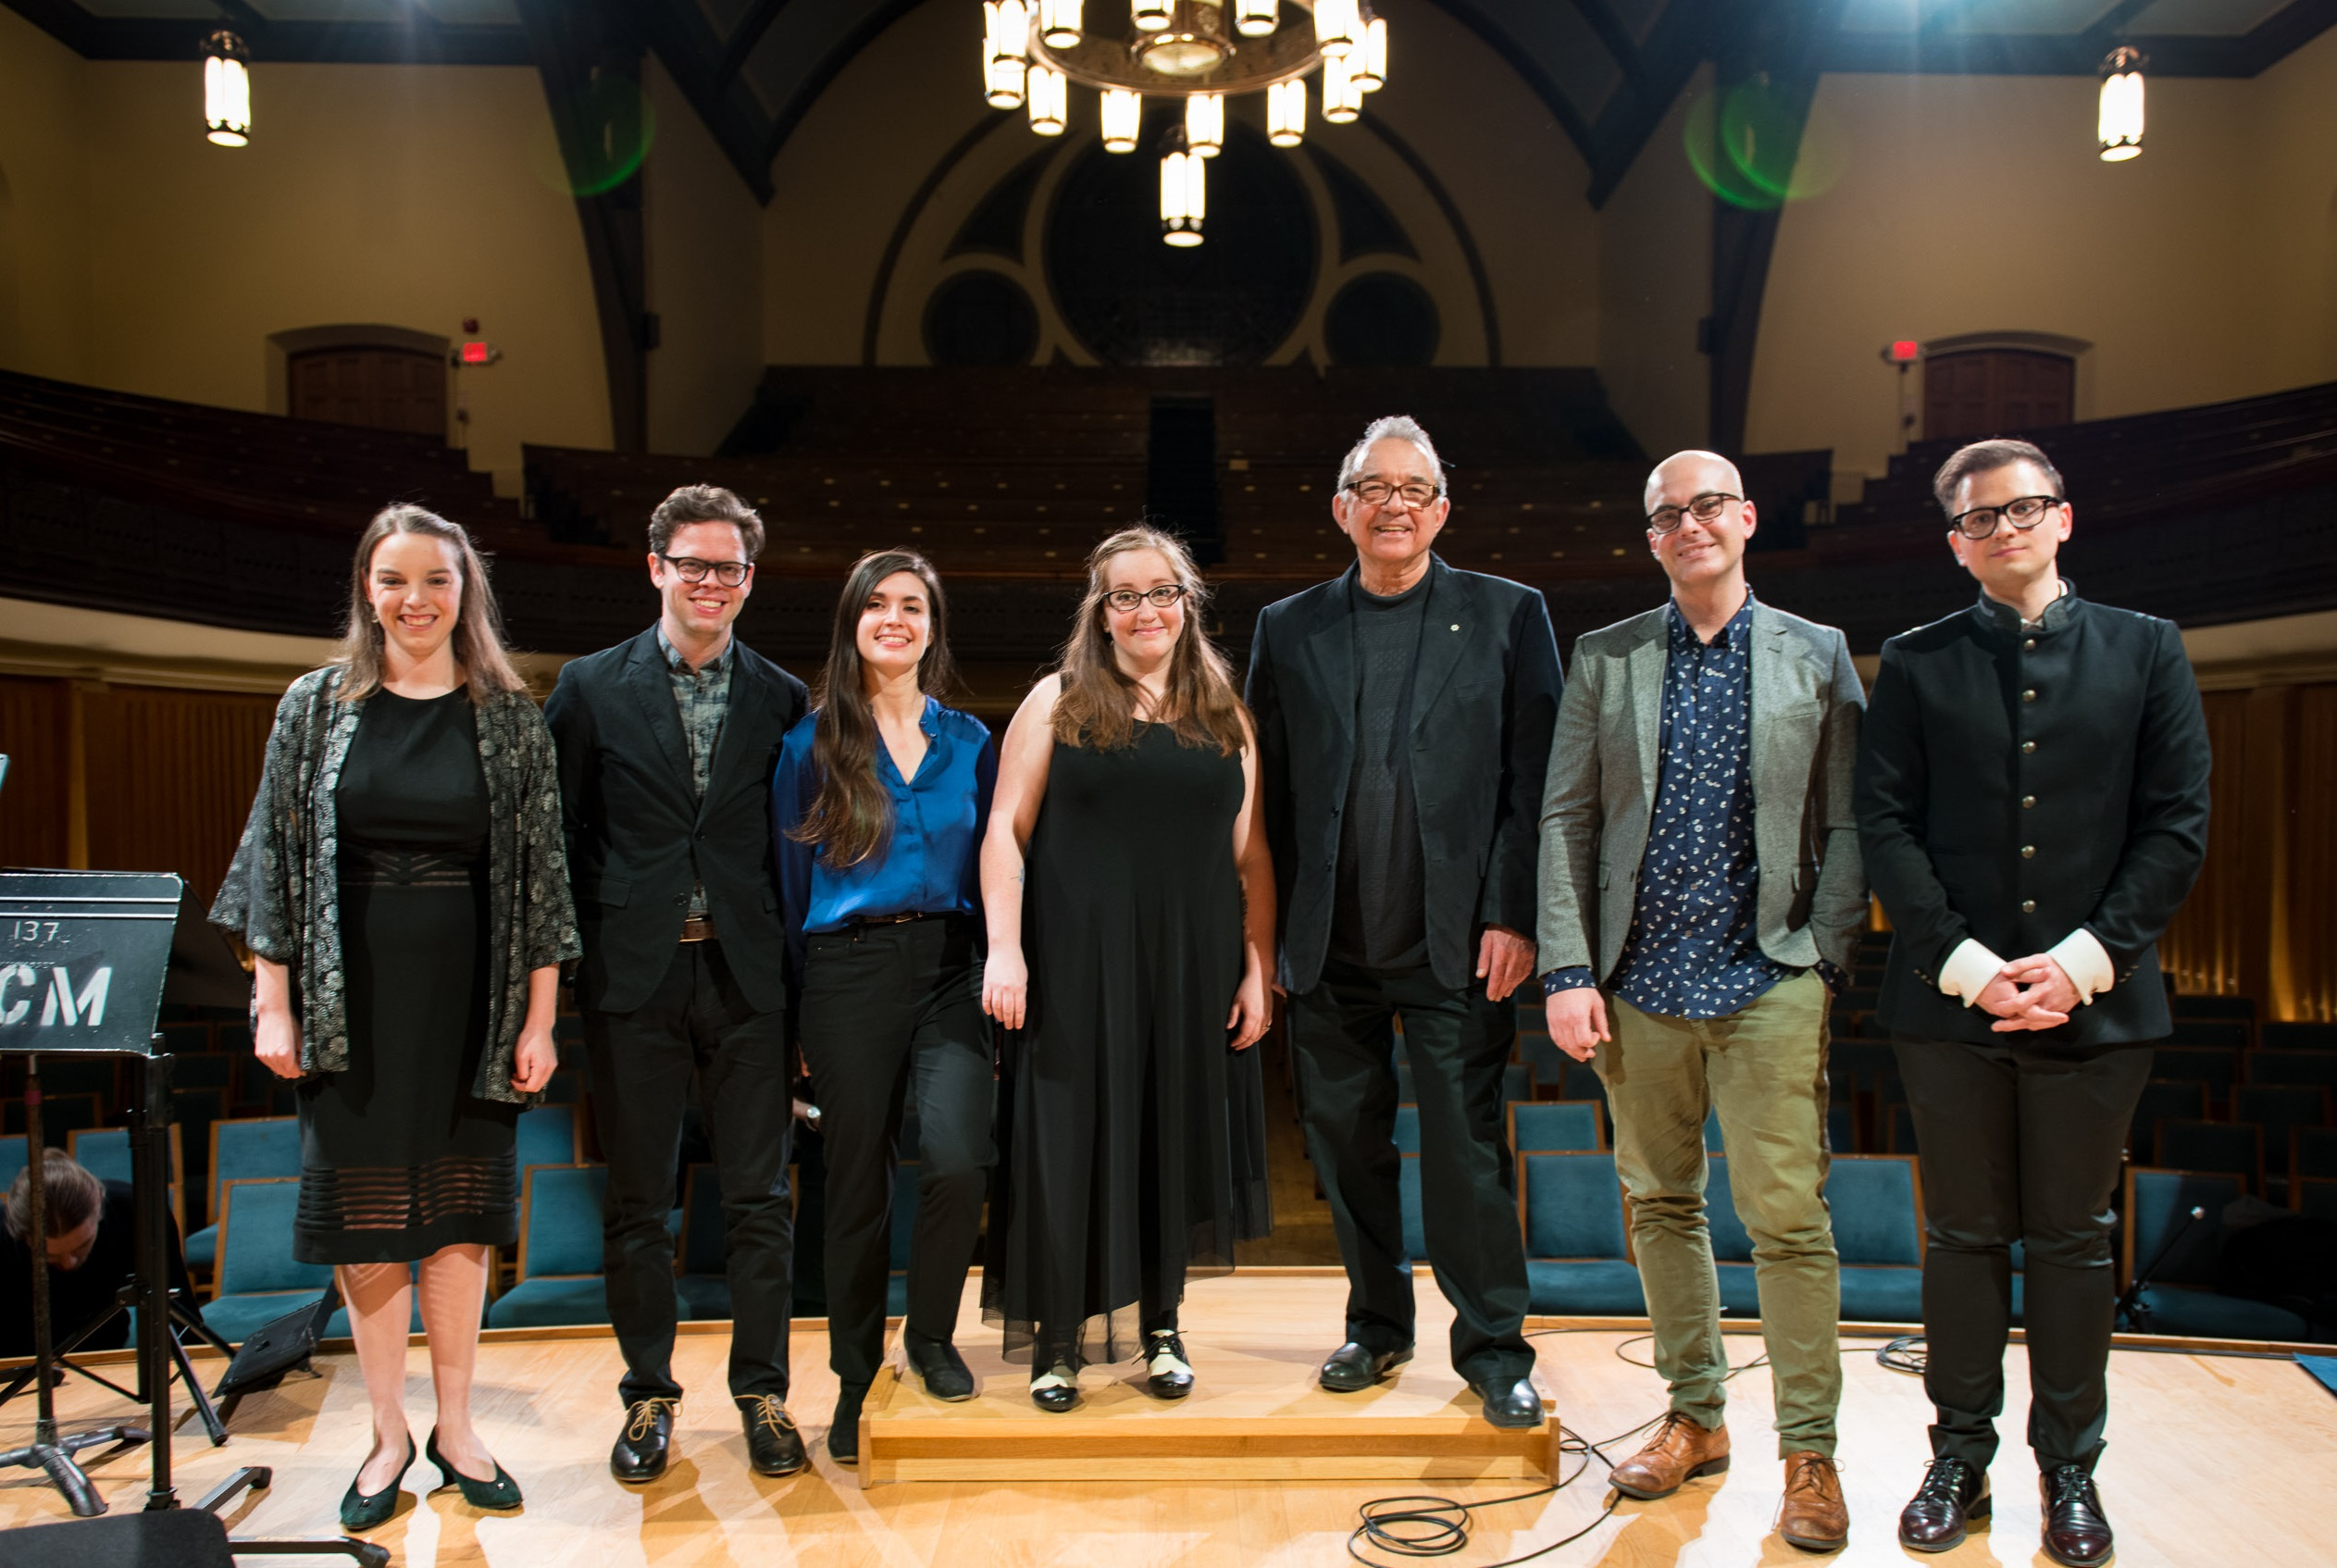 (L to R) Soprano Rebecca Gray; composers Chris Thornborrow, Christina Volpini, & Bekah Simms; Esprit Orchestra conductor Alex Pauk; composer Adam Scime; composer and conductor Eugene Astapov. Photo by Kevin Lloyd.